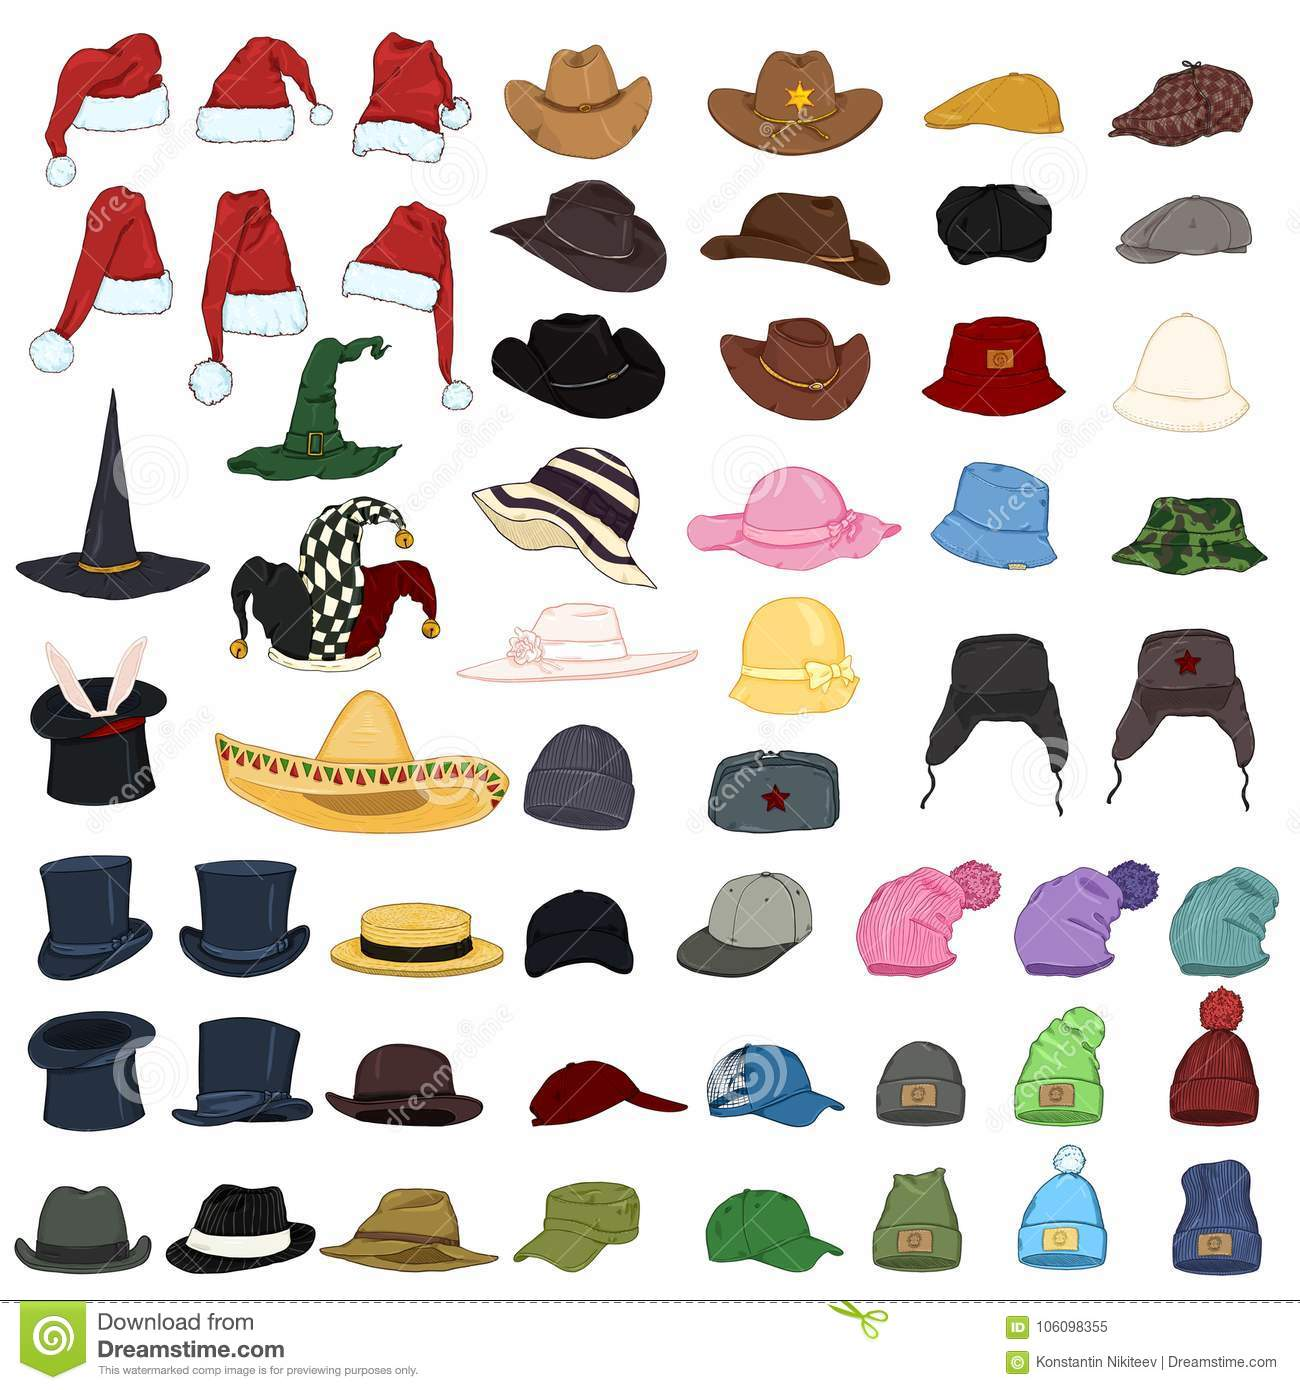 c8db41402e8 Vector Big Set Of Cartoon Hats And Caps. 57 Headwear Items. Stock ...